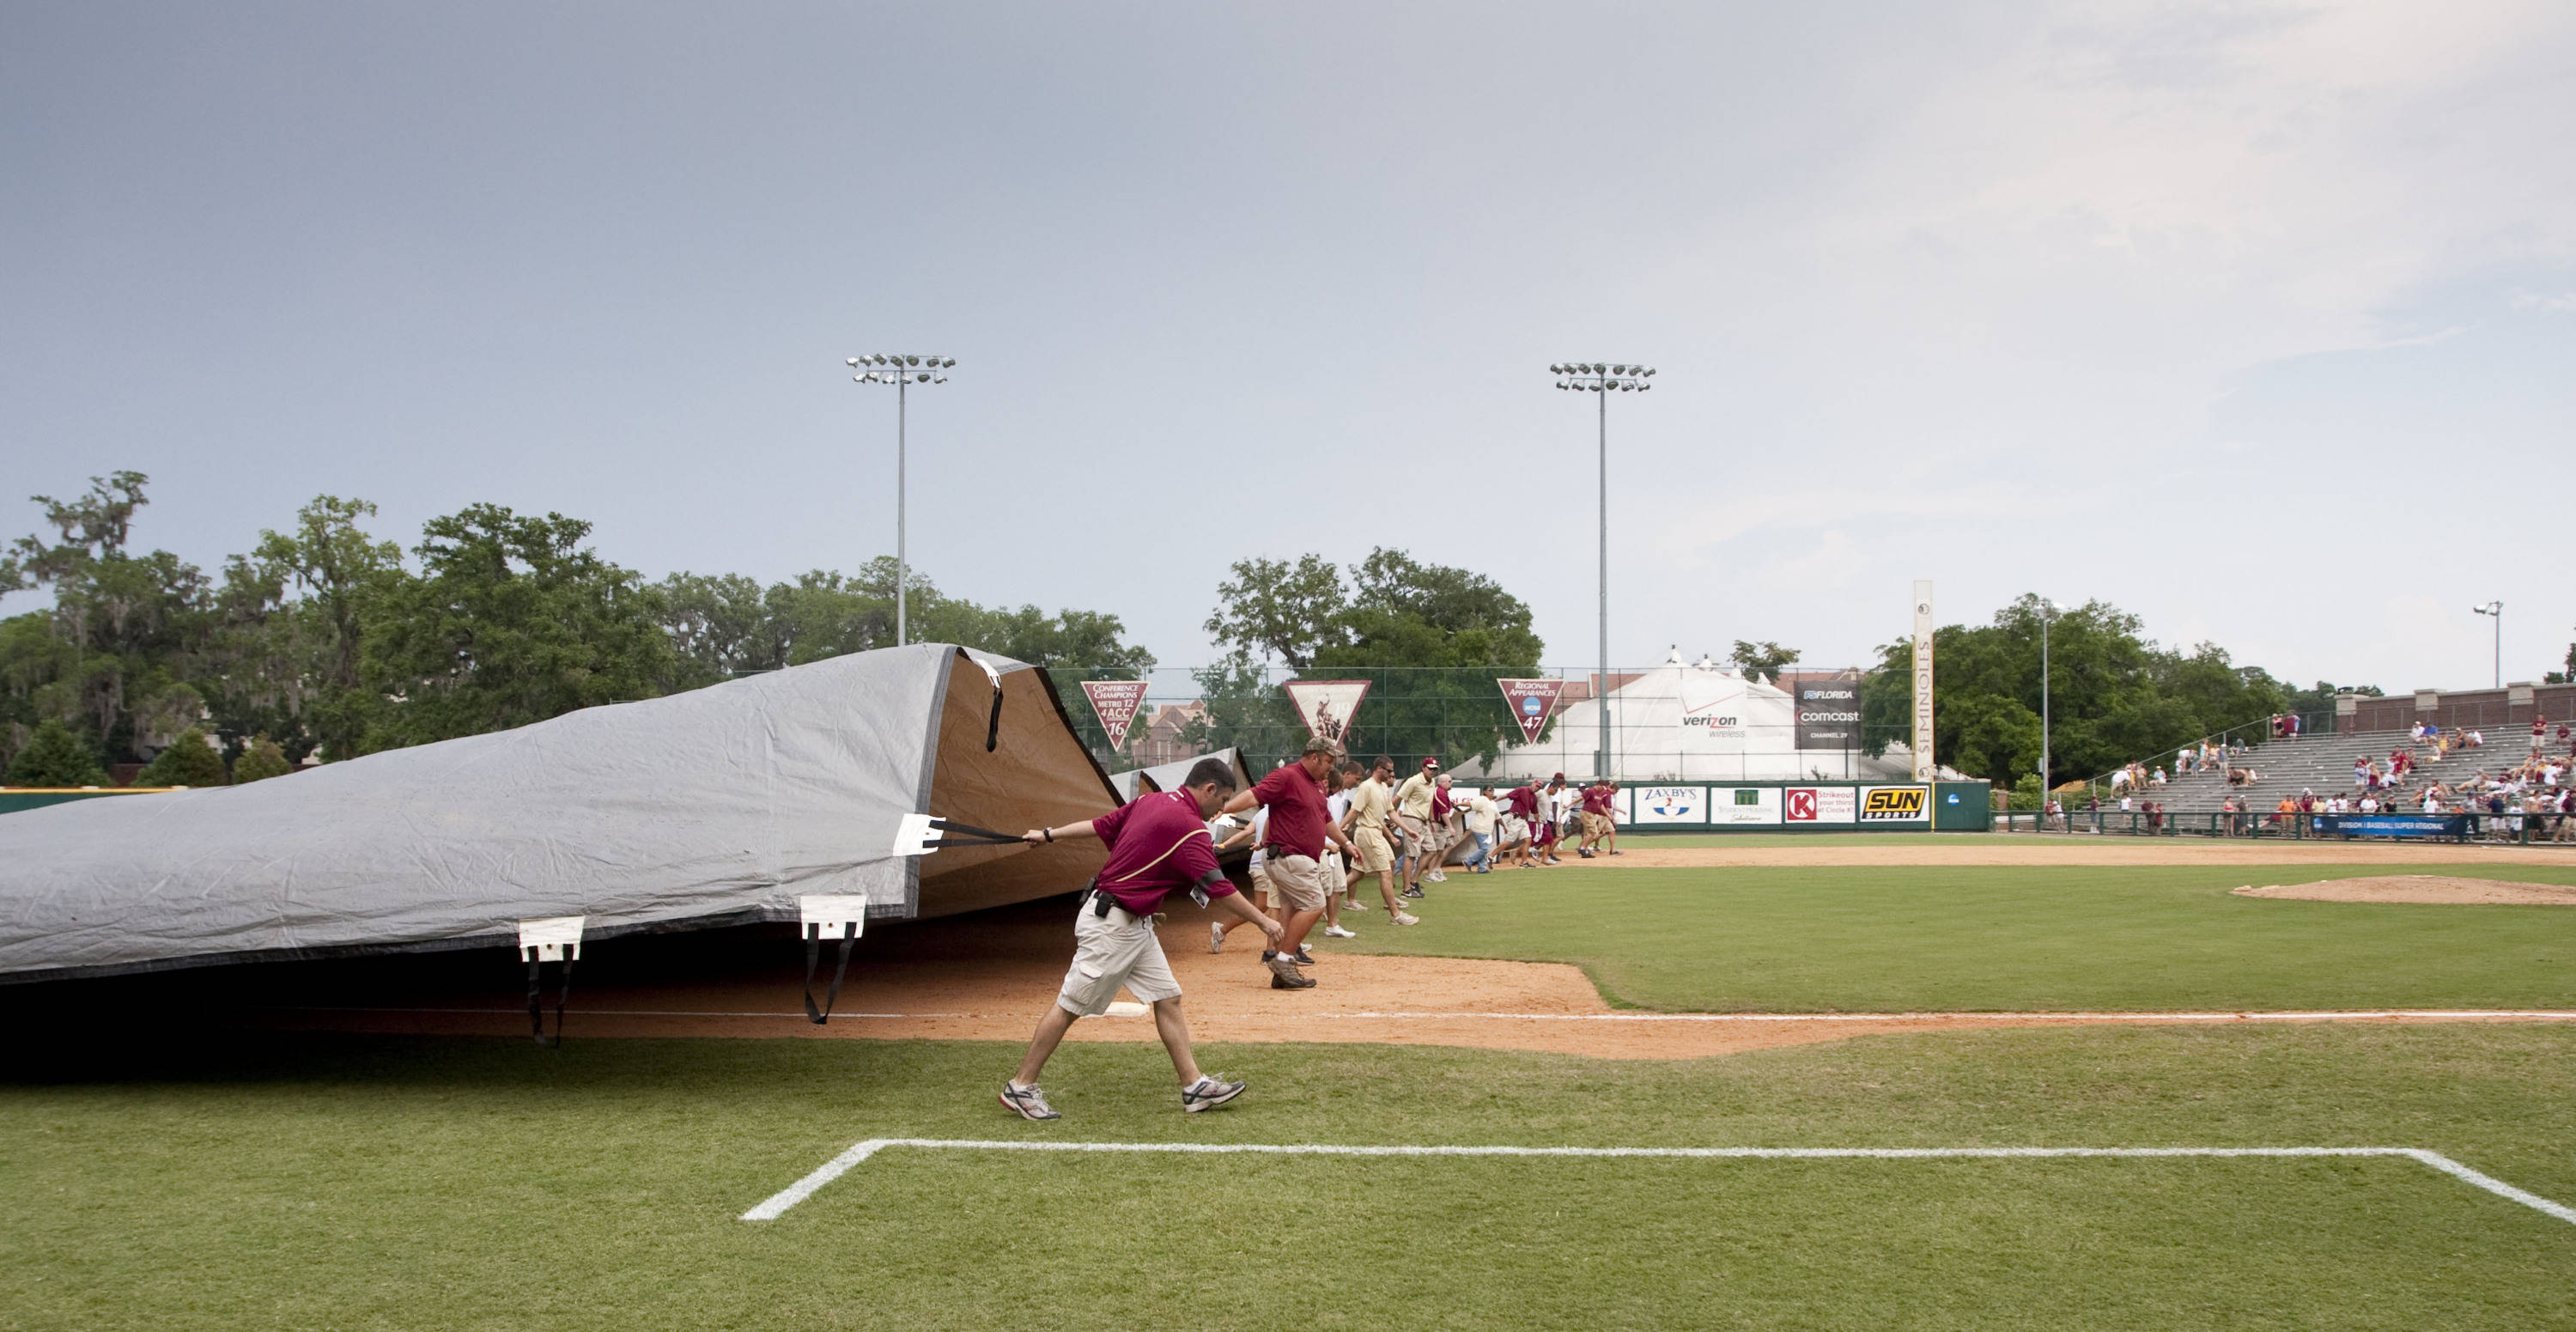 FSU staff cover the infield after the game is delayed due to lightening in the 8th inning.